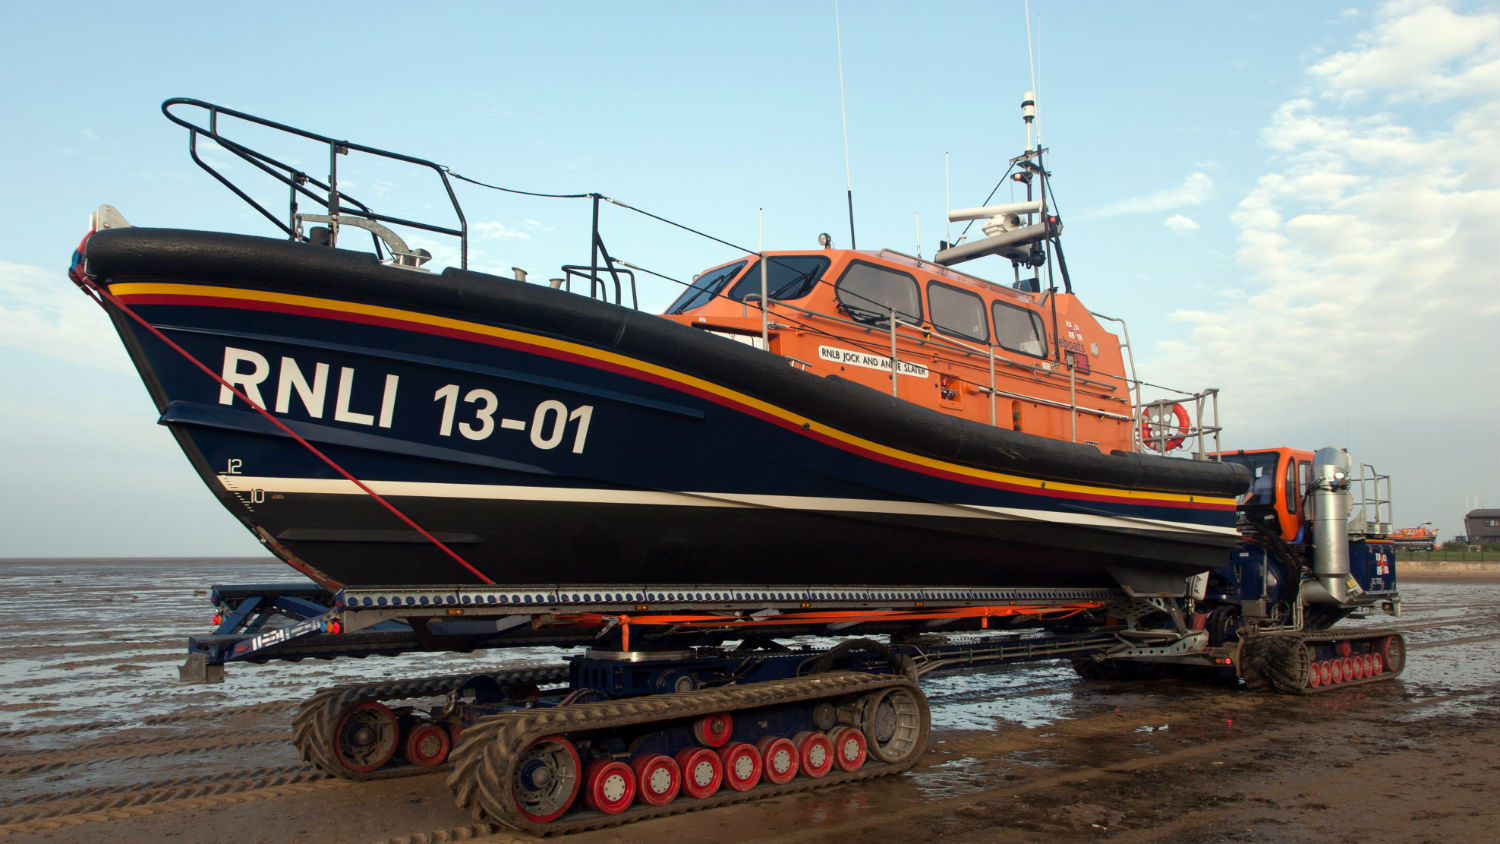 Firs Shannon class lifeboat